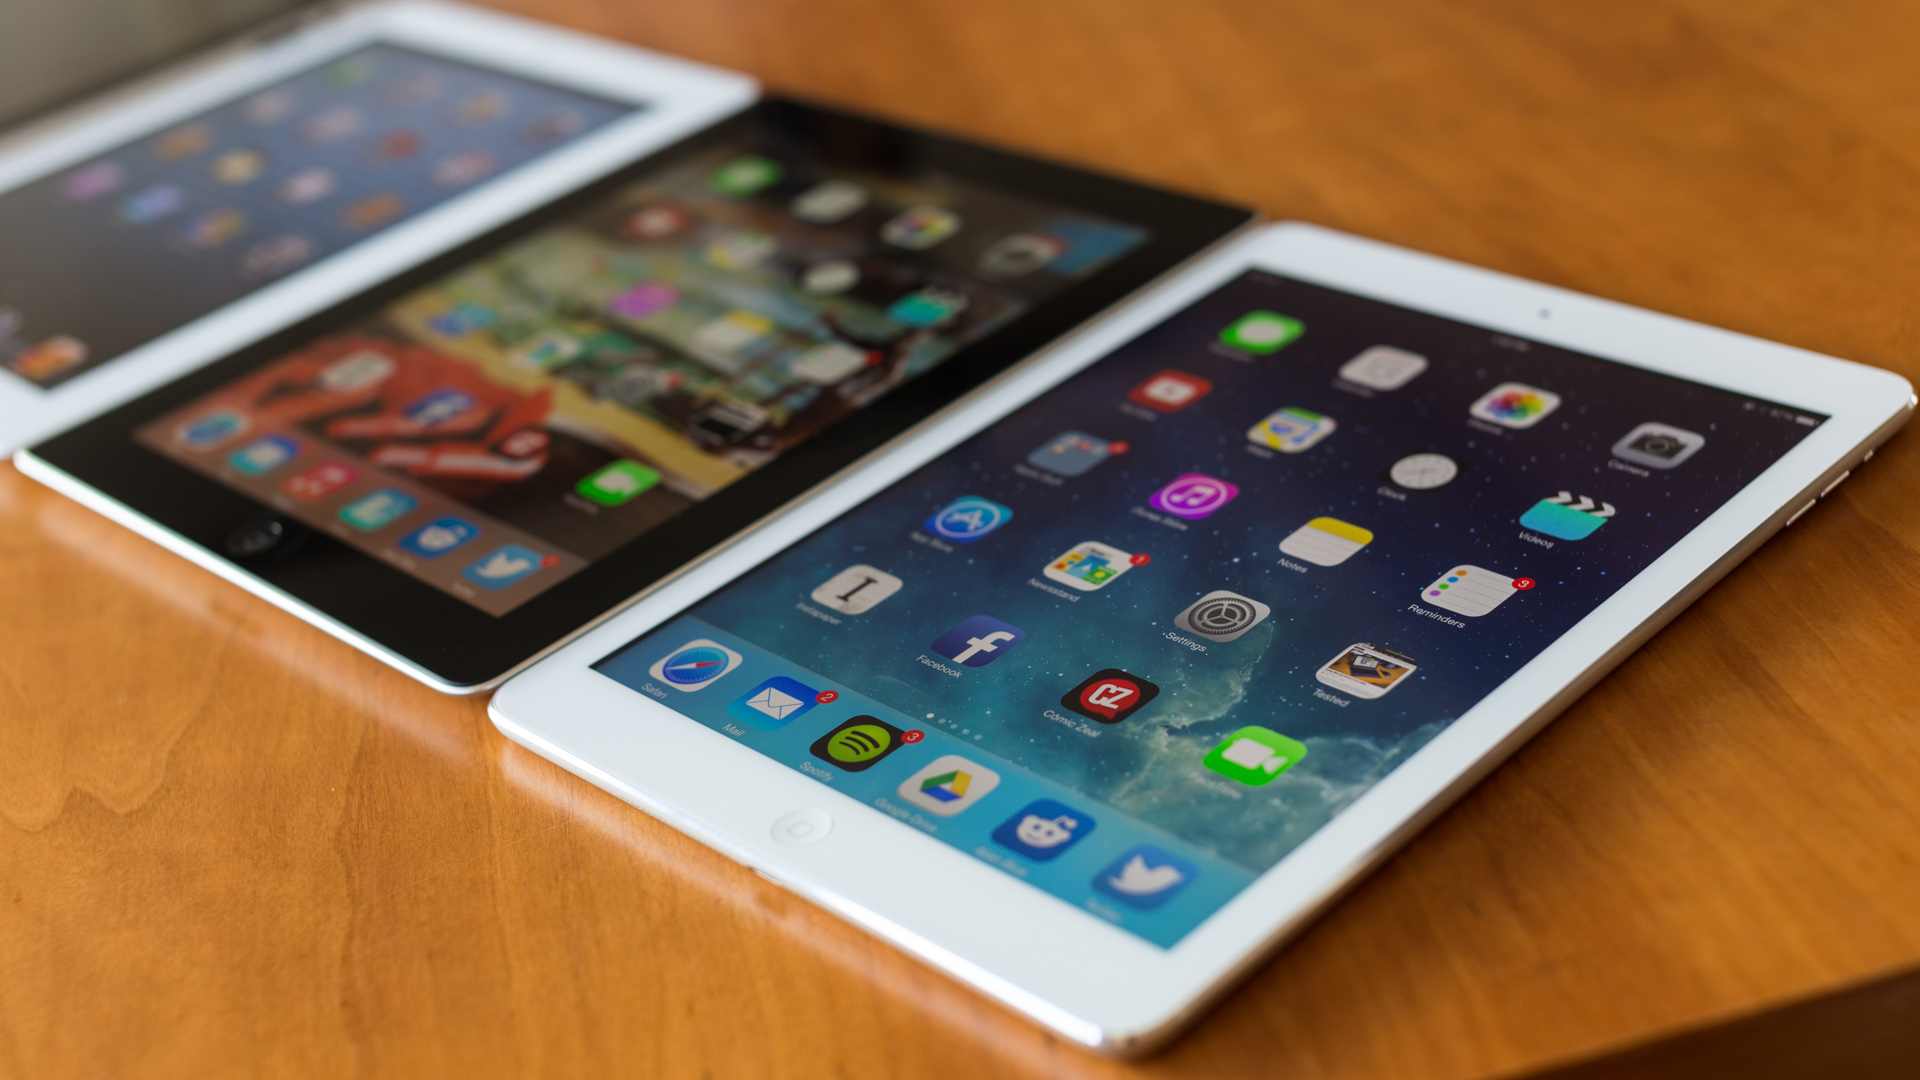 how to make your ipad mini 2 charge faster